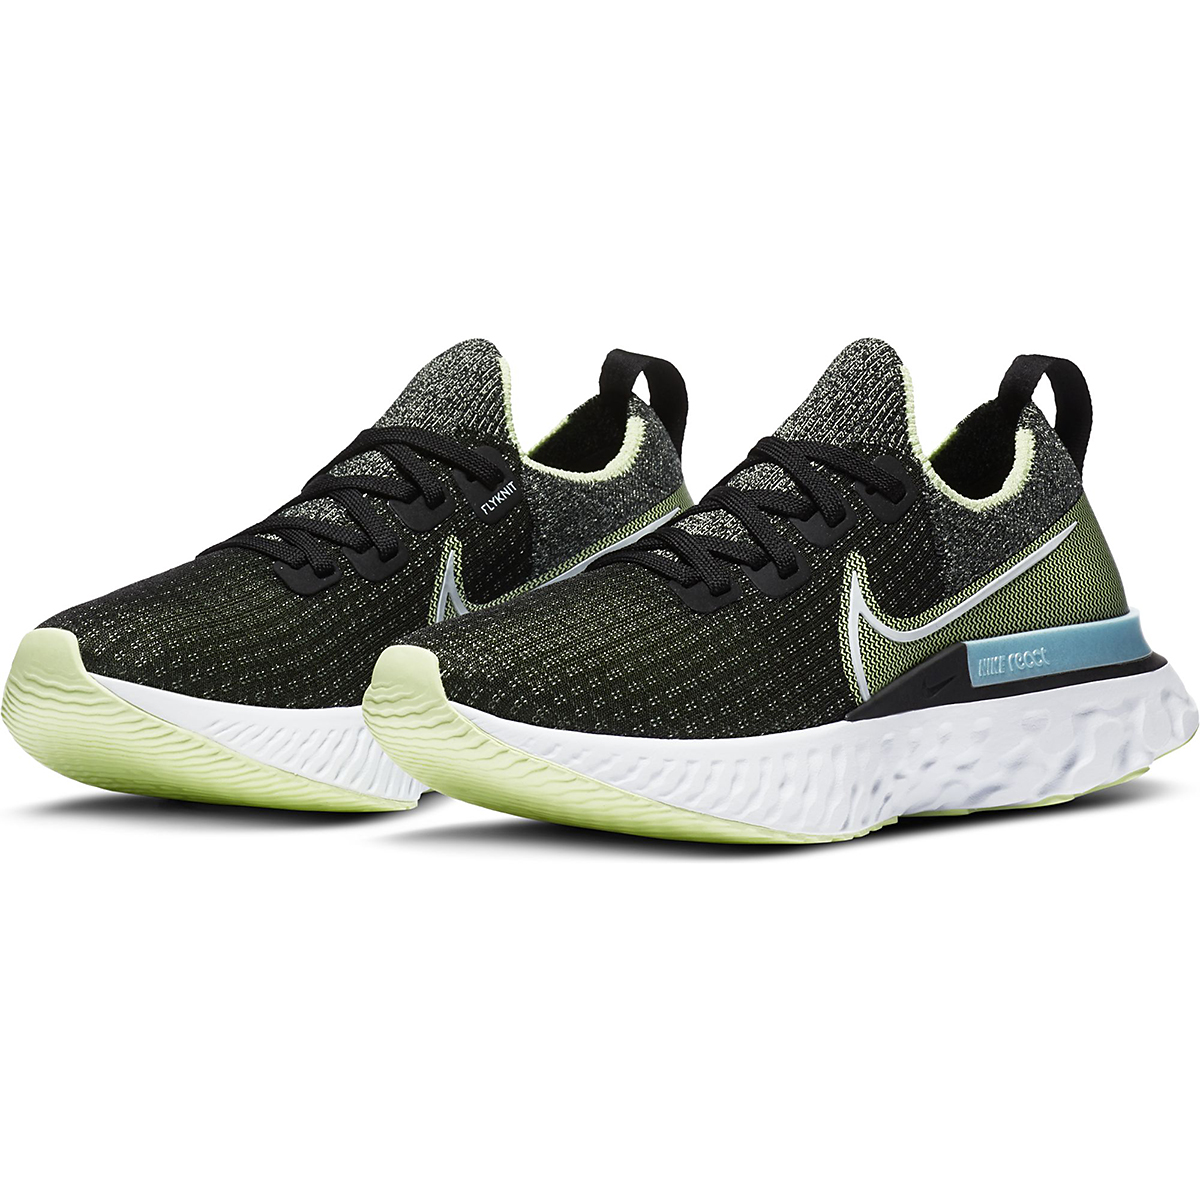 Women's Nike Nike React Infinity Run Flyknit Running Shoe - Color: Black/White-Barely Volt-Glacier Ice - Size: 5 - Width: Regular, Black/White-Barely Volt-Glacier Ice, large, image 3